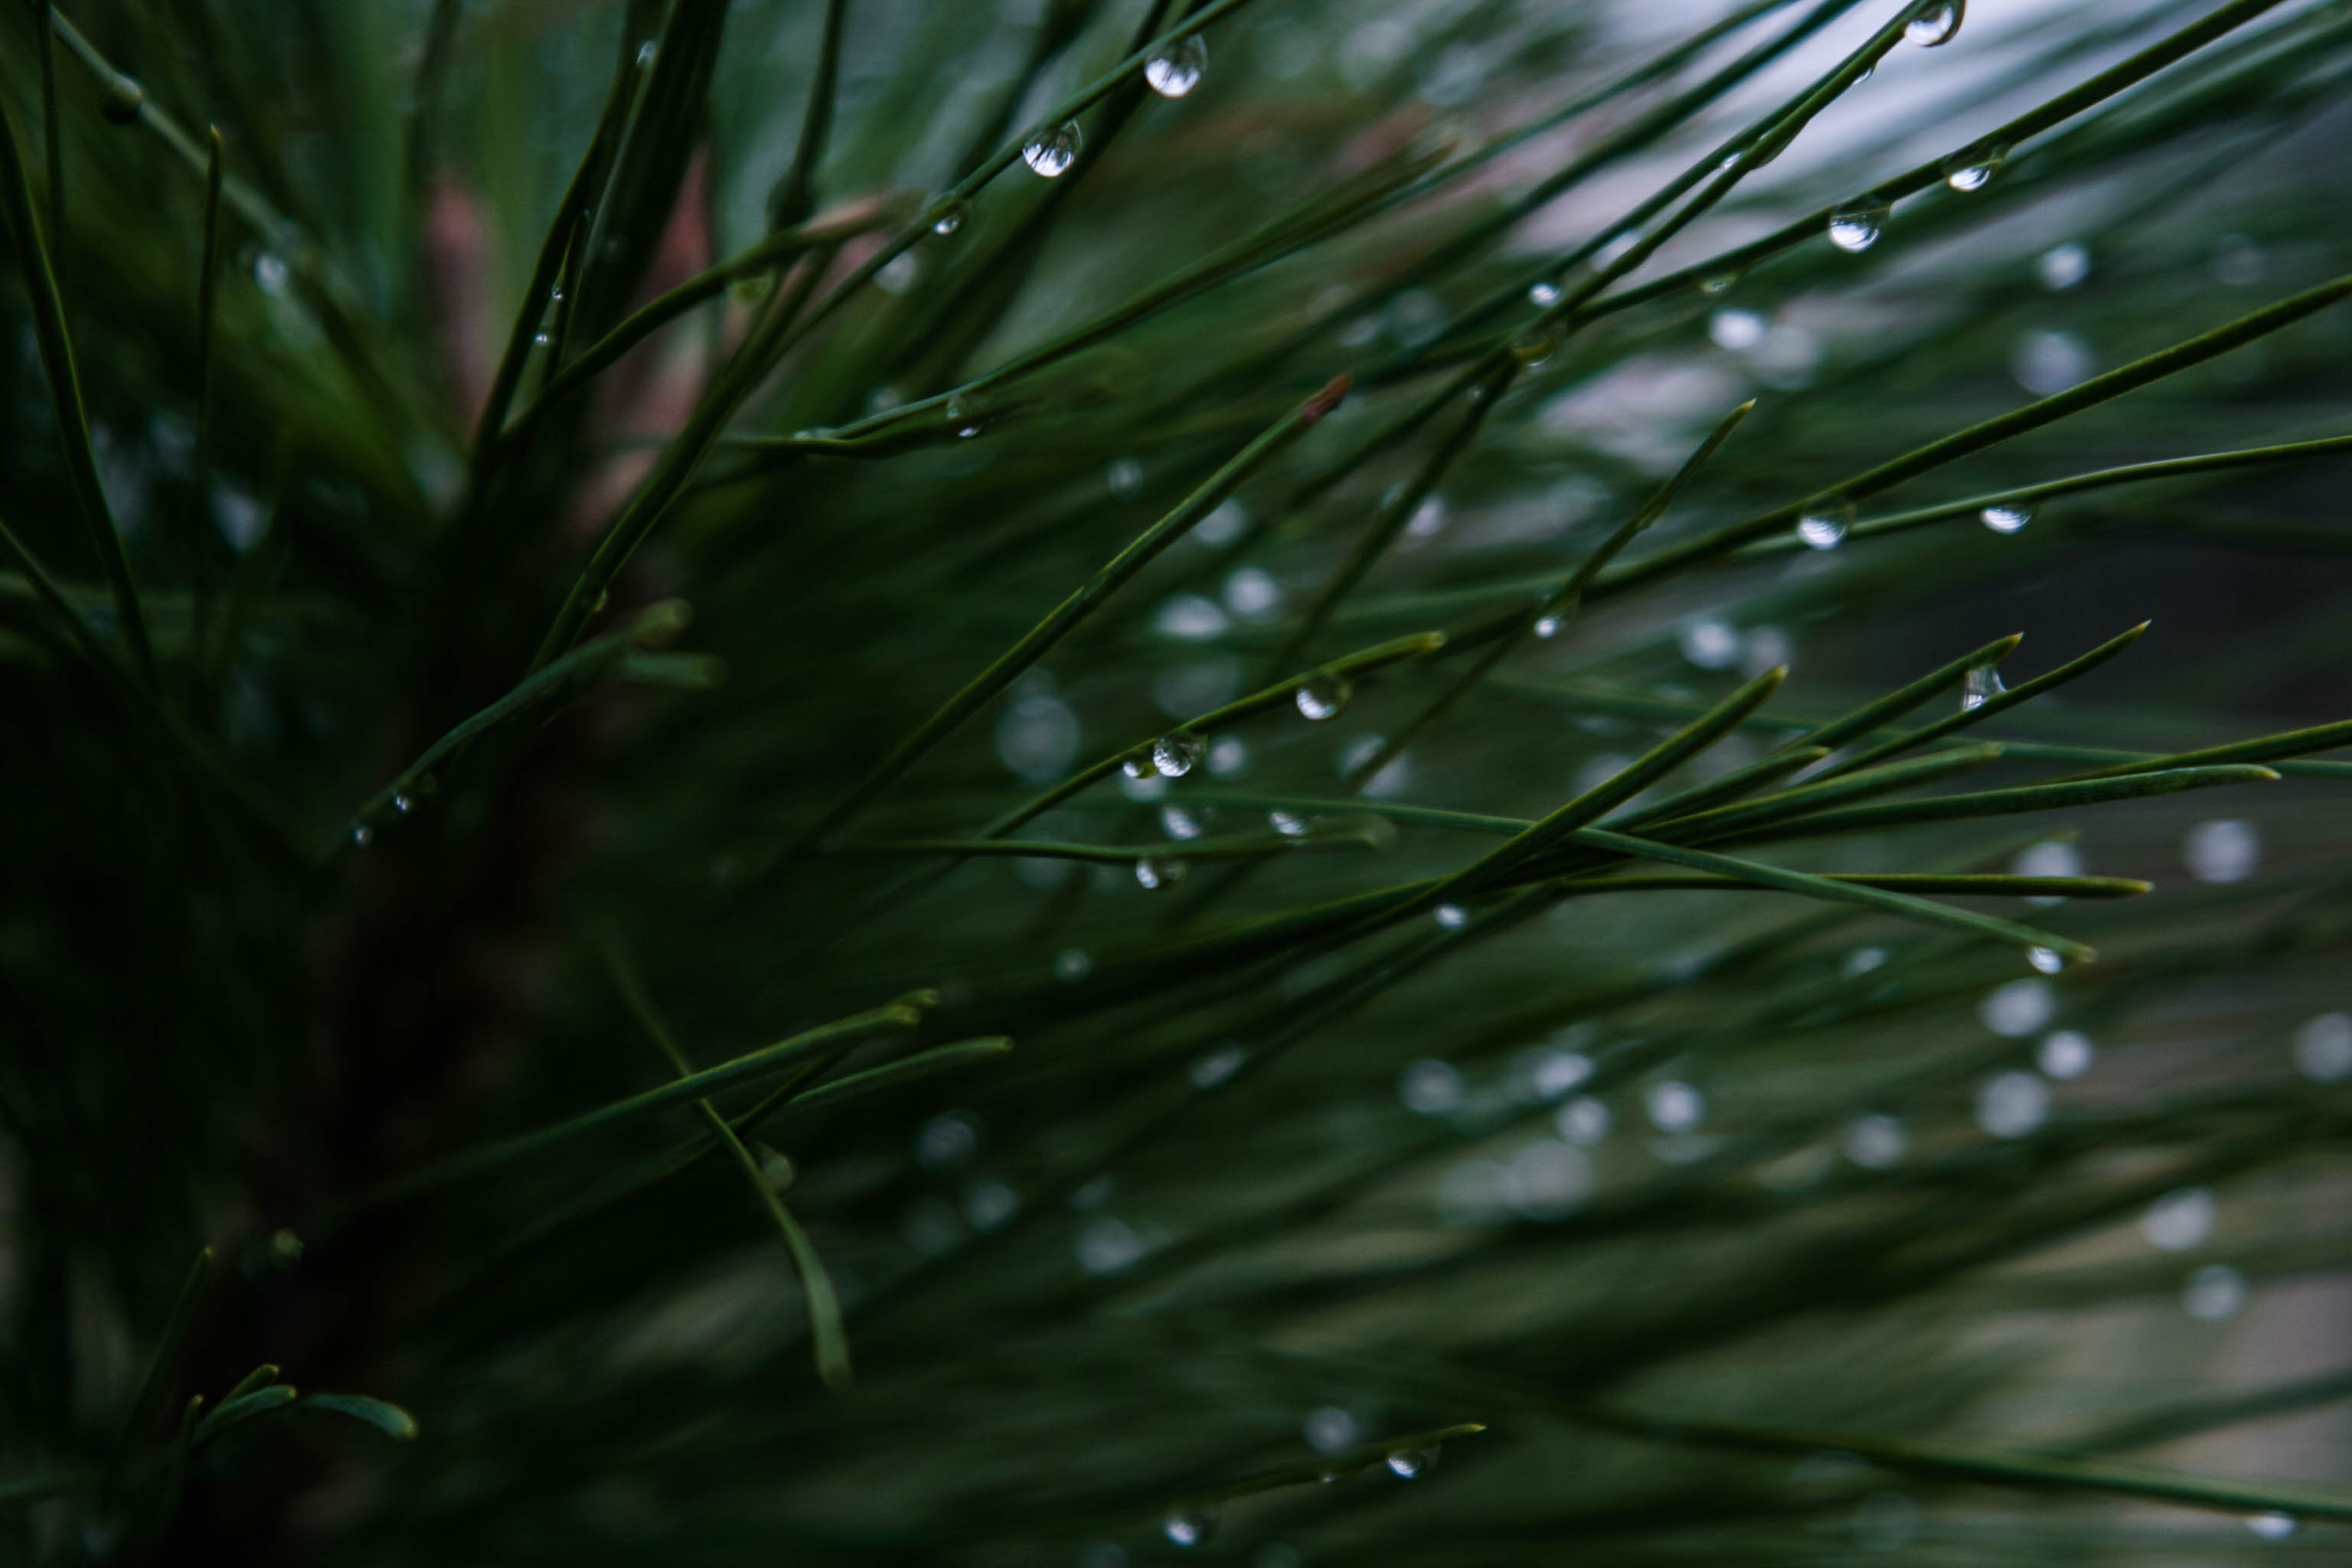 Fall Pics Wallpaper Dew Pine Needle And Tree Hd Photo By Micah Hallahan